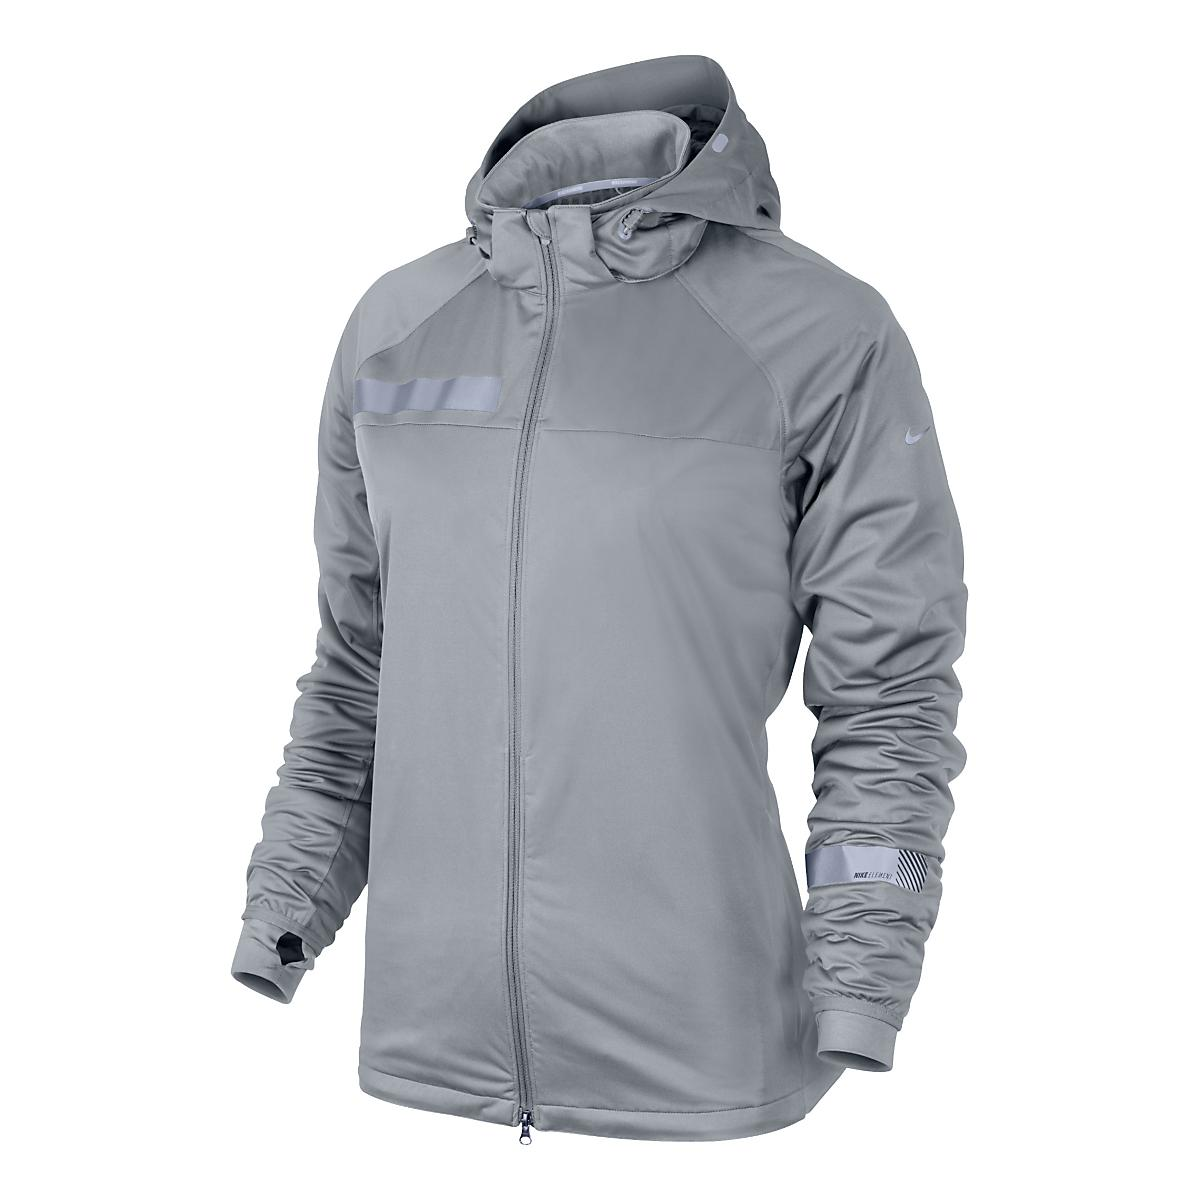 Womens Nike Element Shield Max Running Jackets at Road Runner Sports fef7d4071bc5d